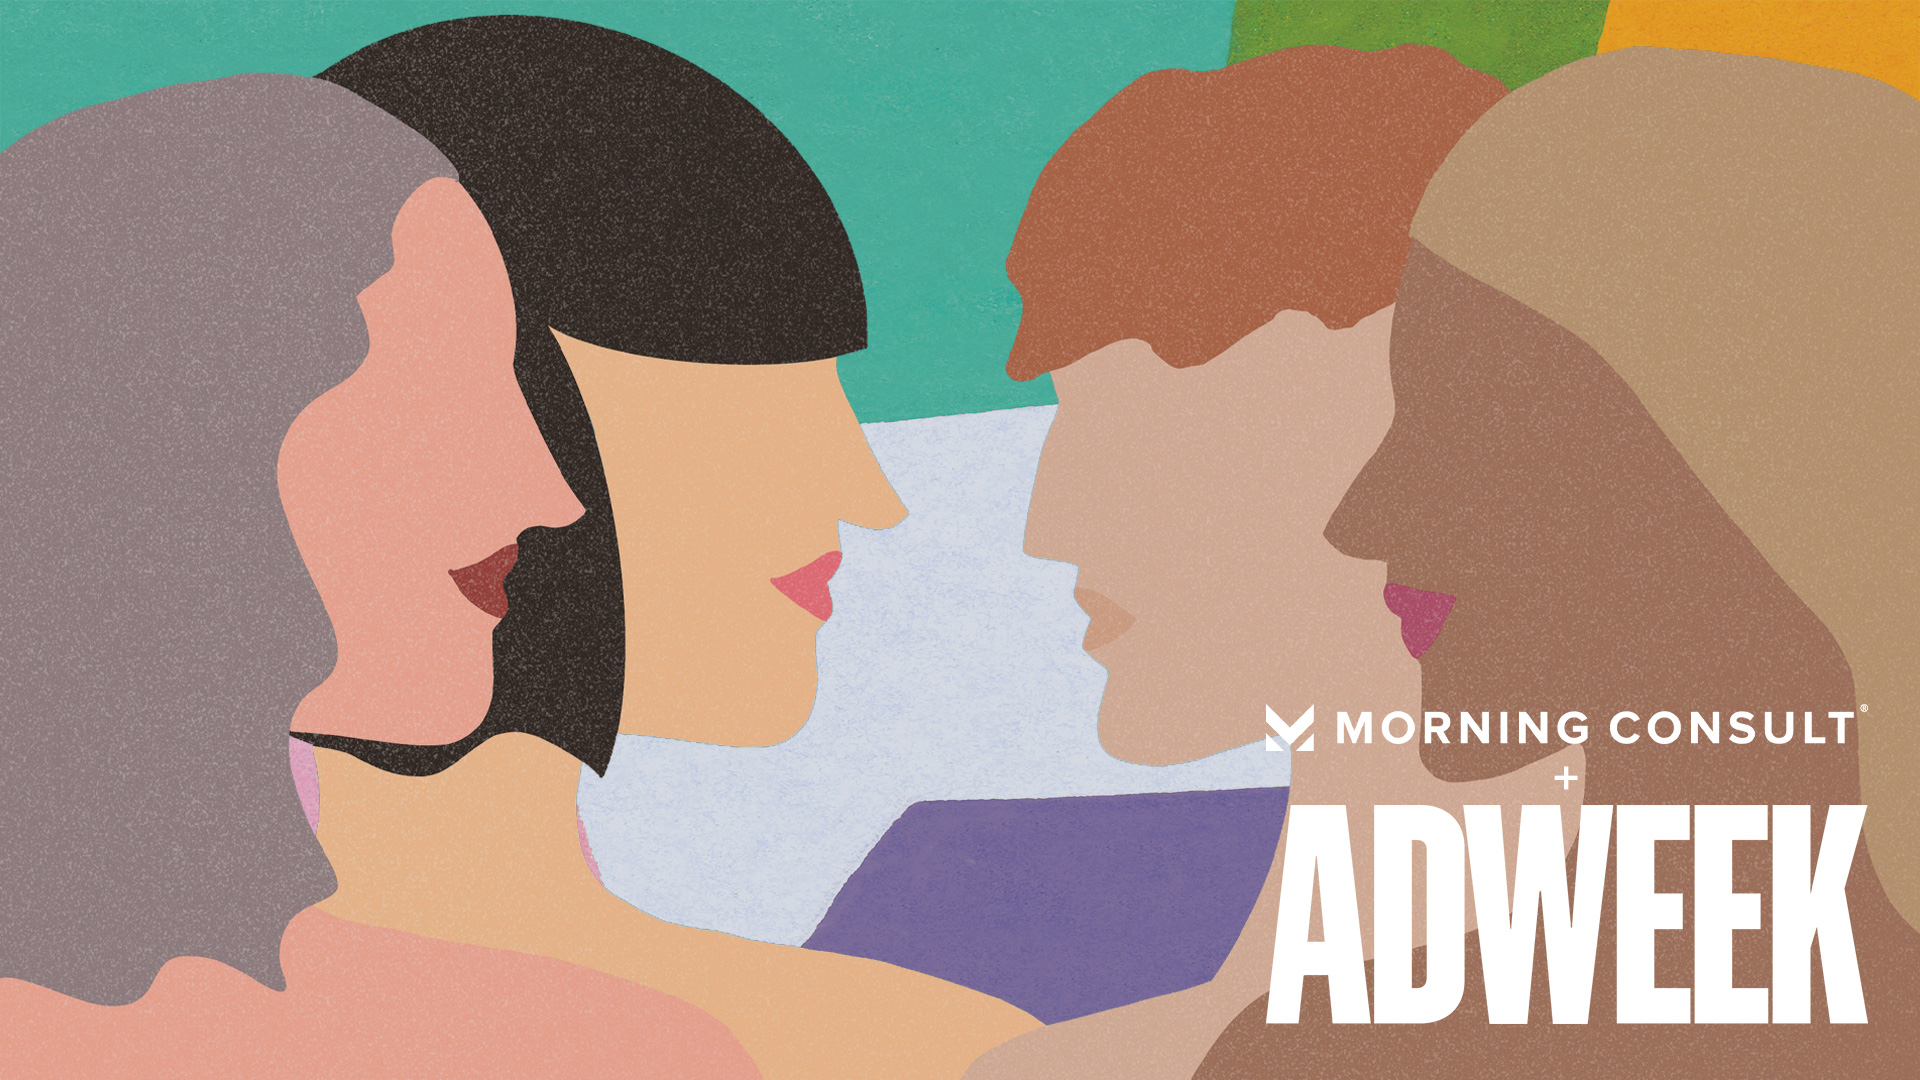 the words morning consult and adweek in white text in front of four women facing each other